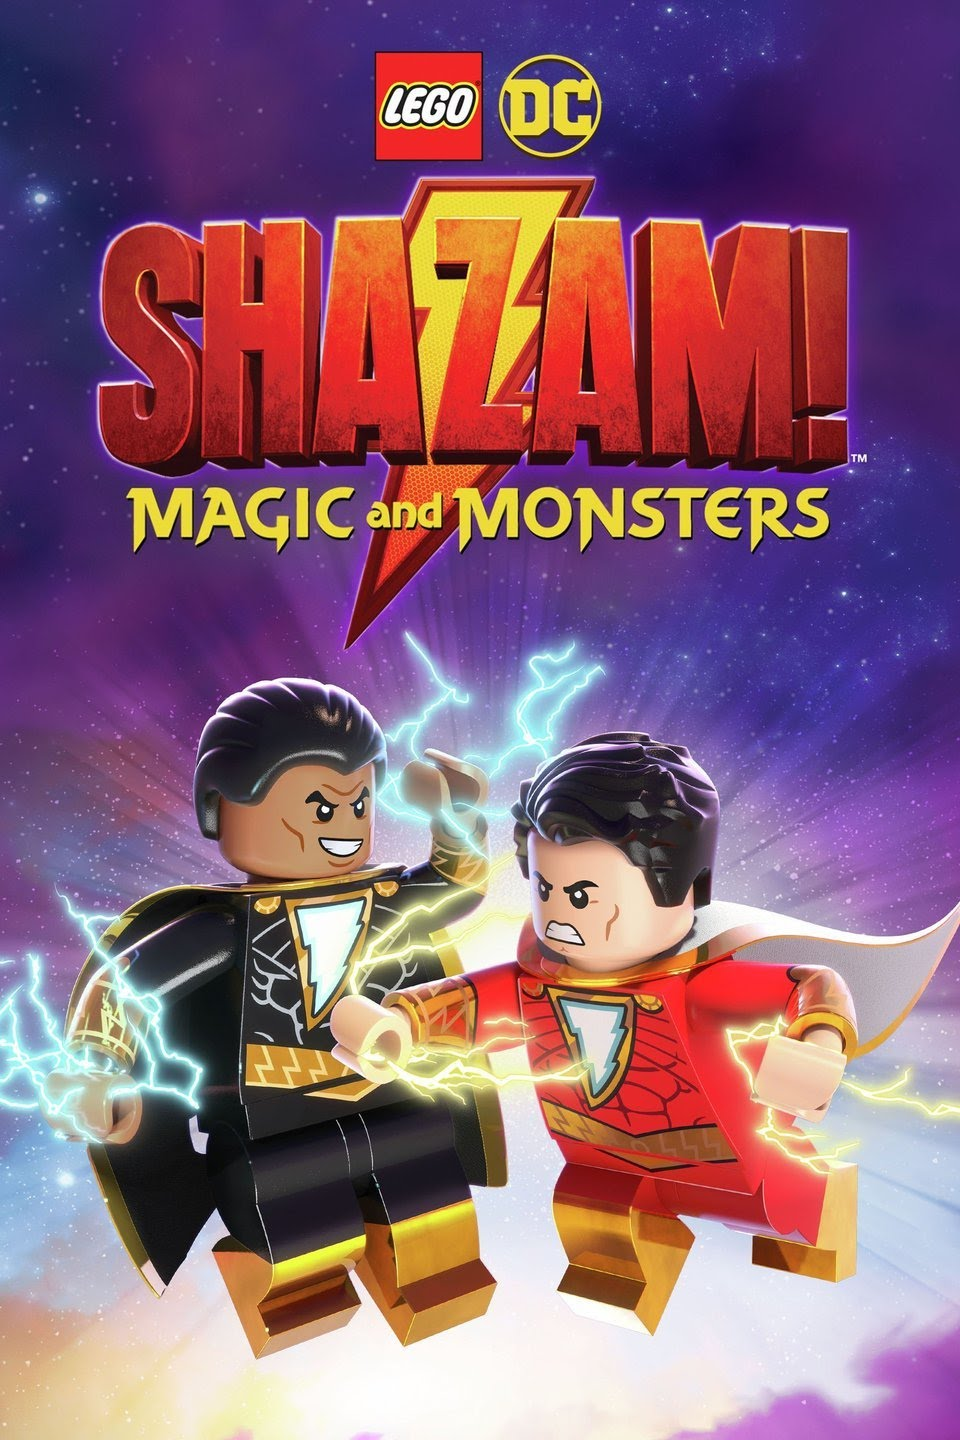 LEGO DC Shazam! - Magic and Monsters.jpg